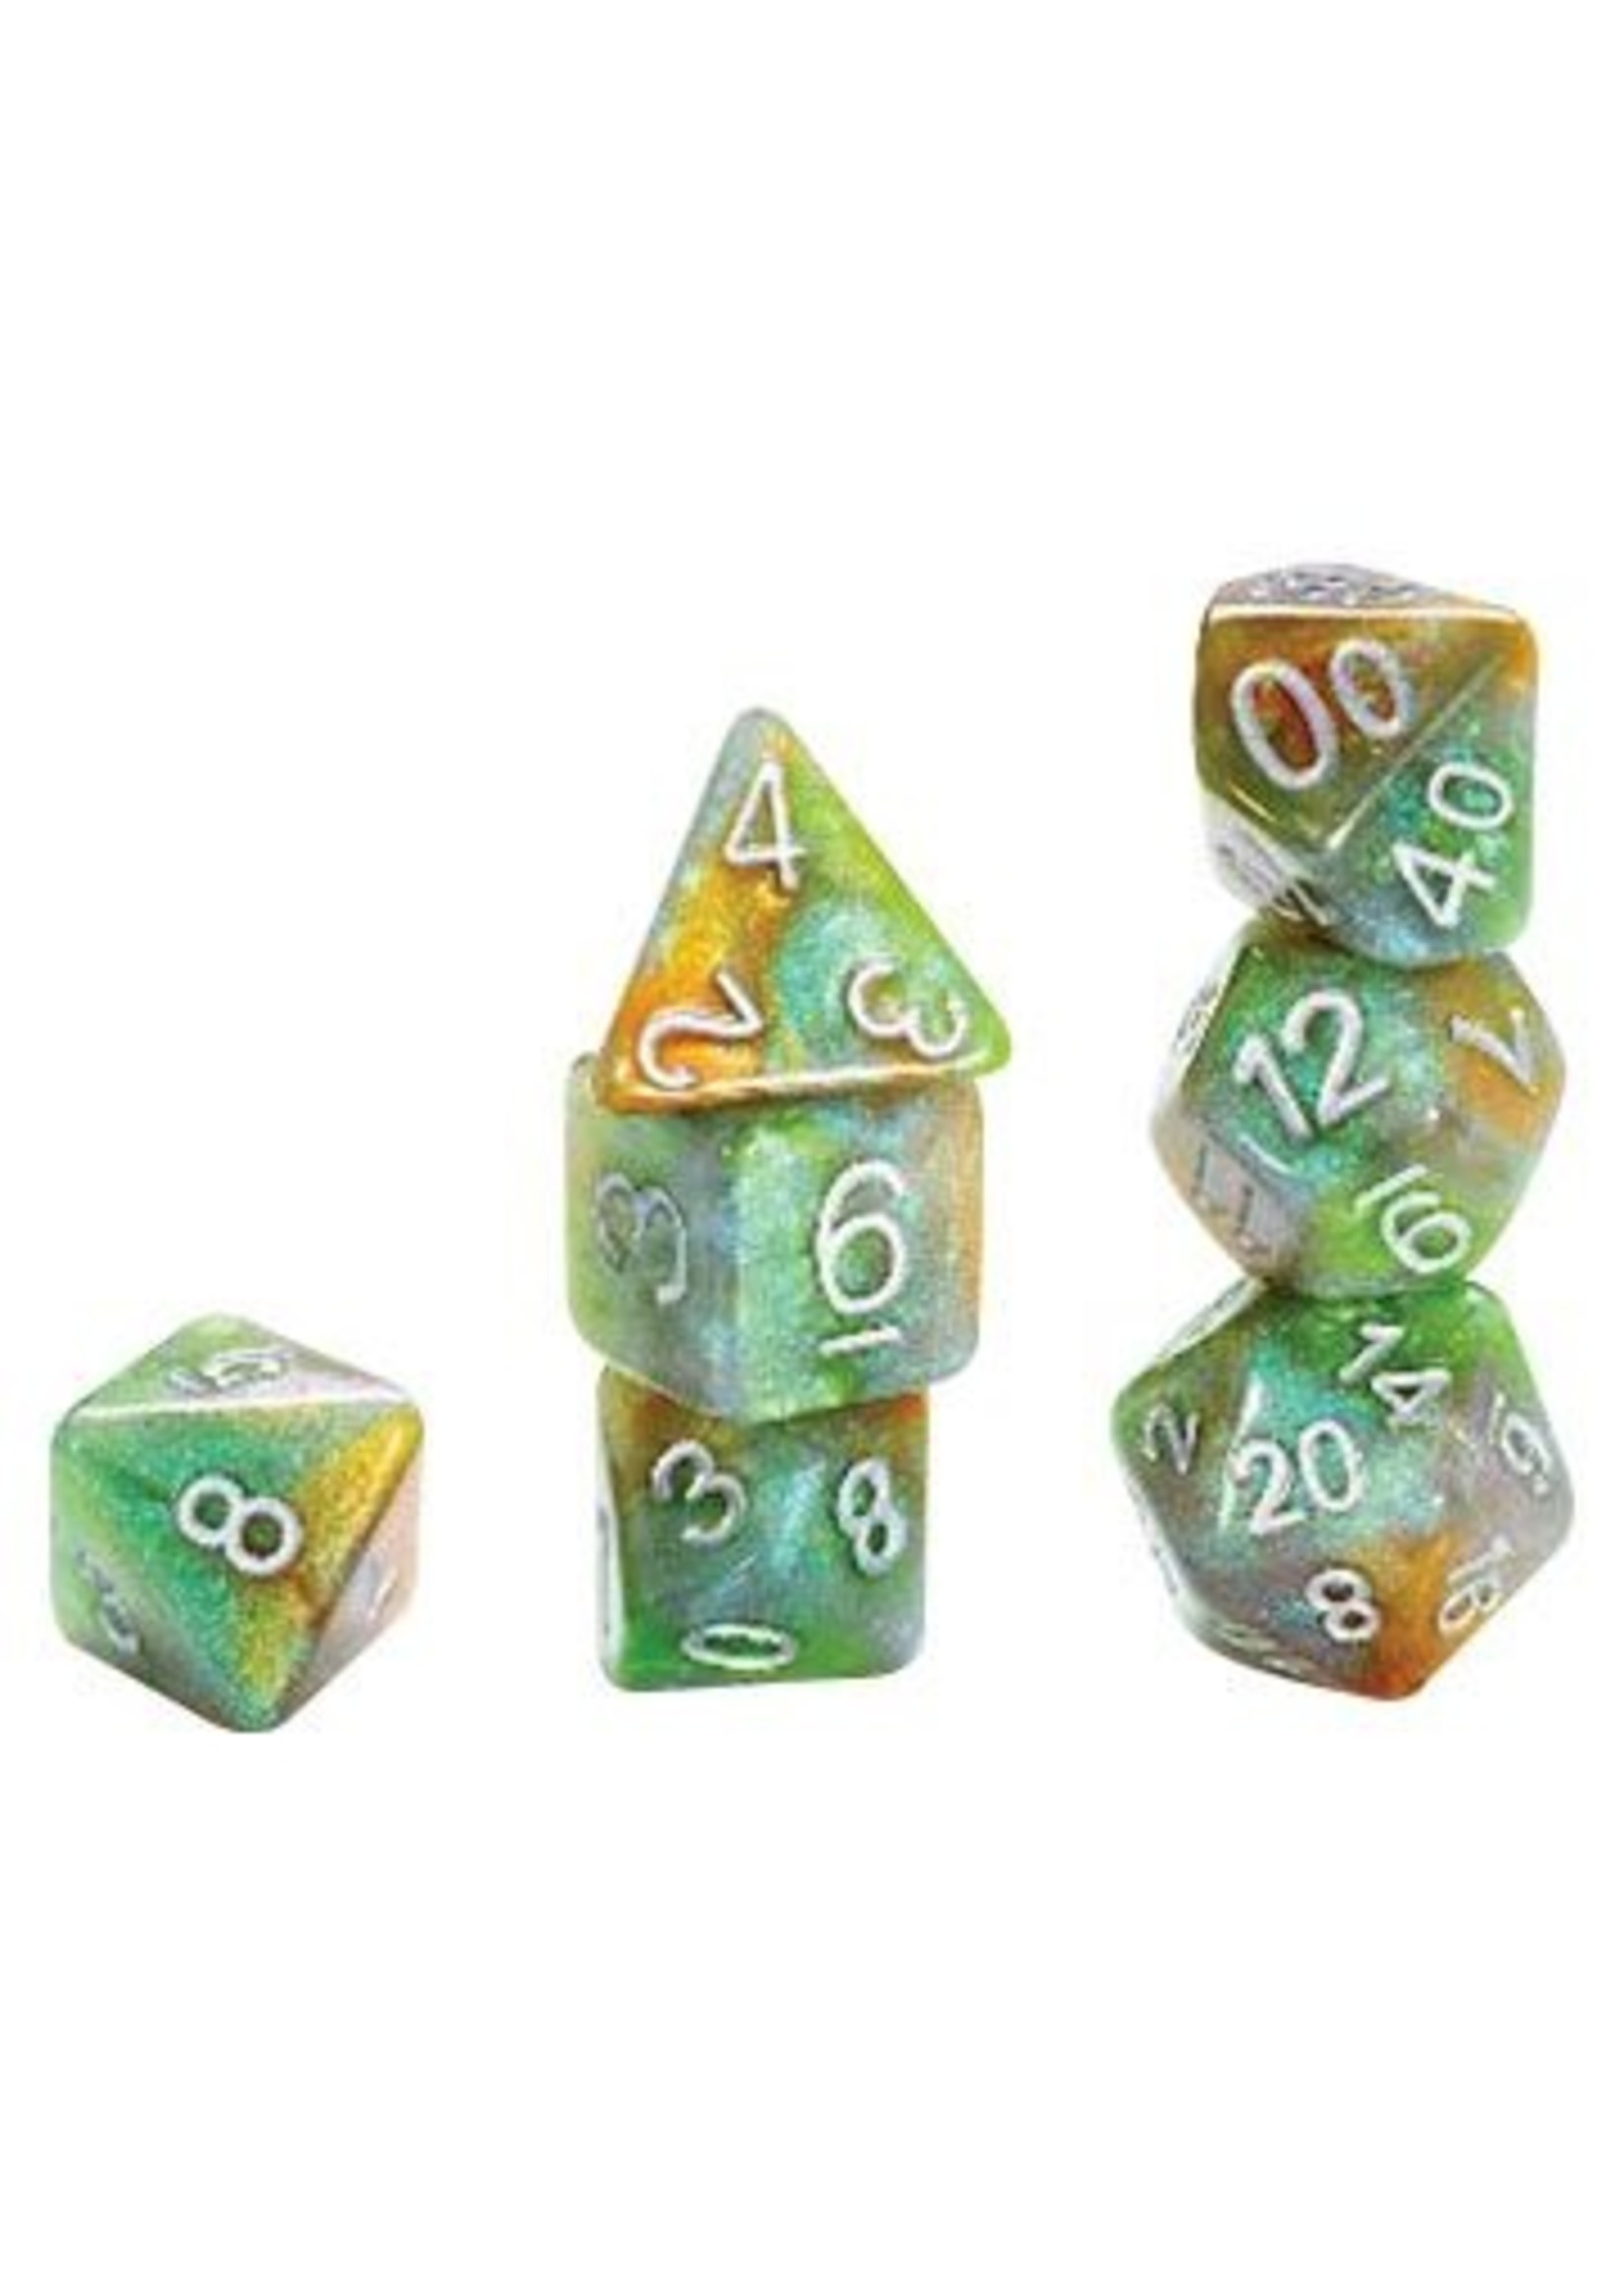 Aether Dice: Ork York (7 Polyhedral Dice Set)